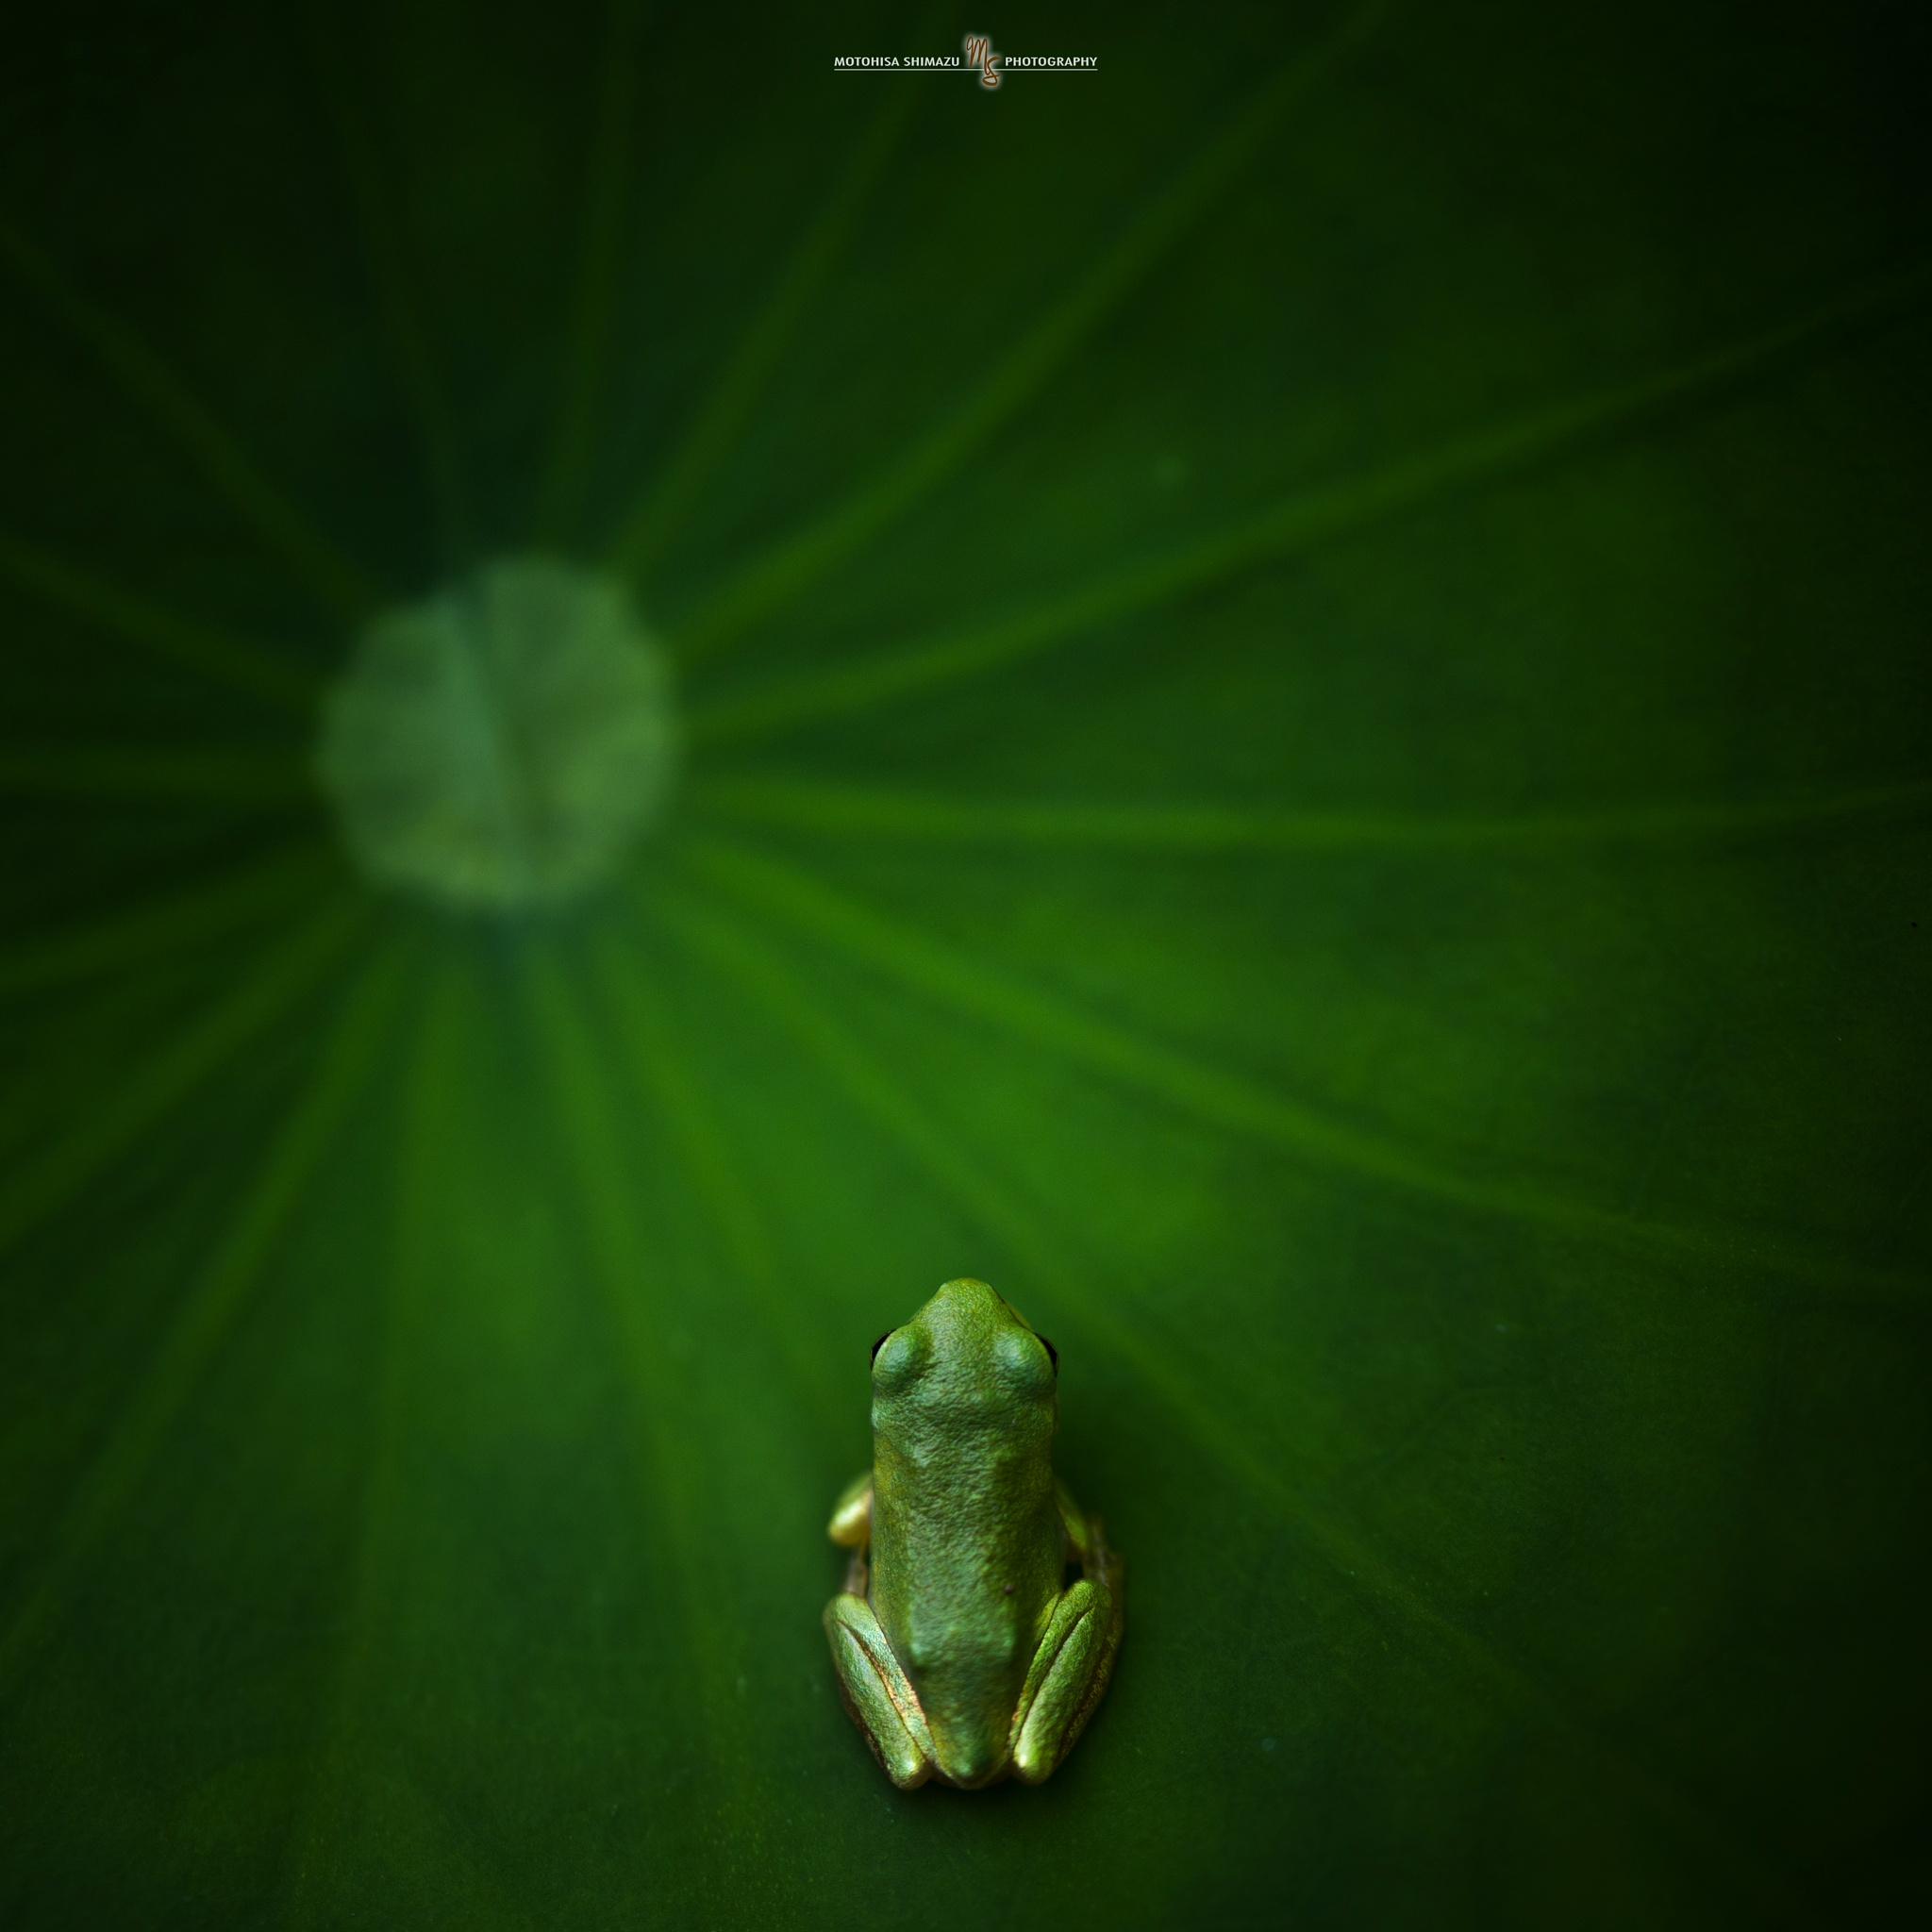 I was turned by magic into a frog. by Motohisa Shimazu